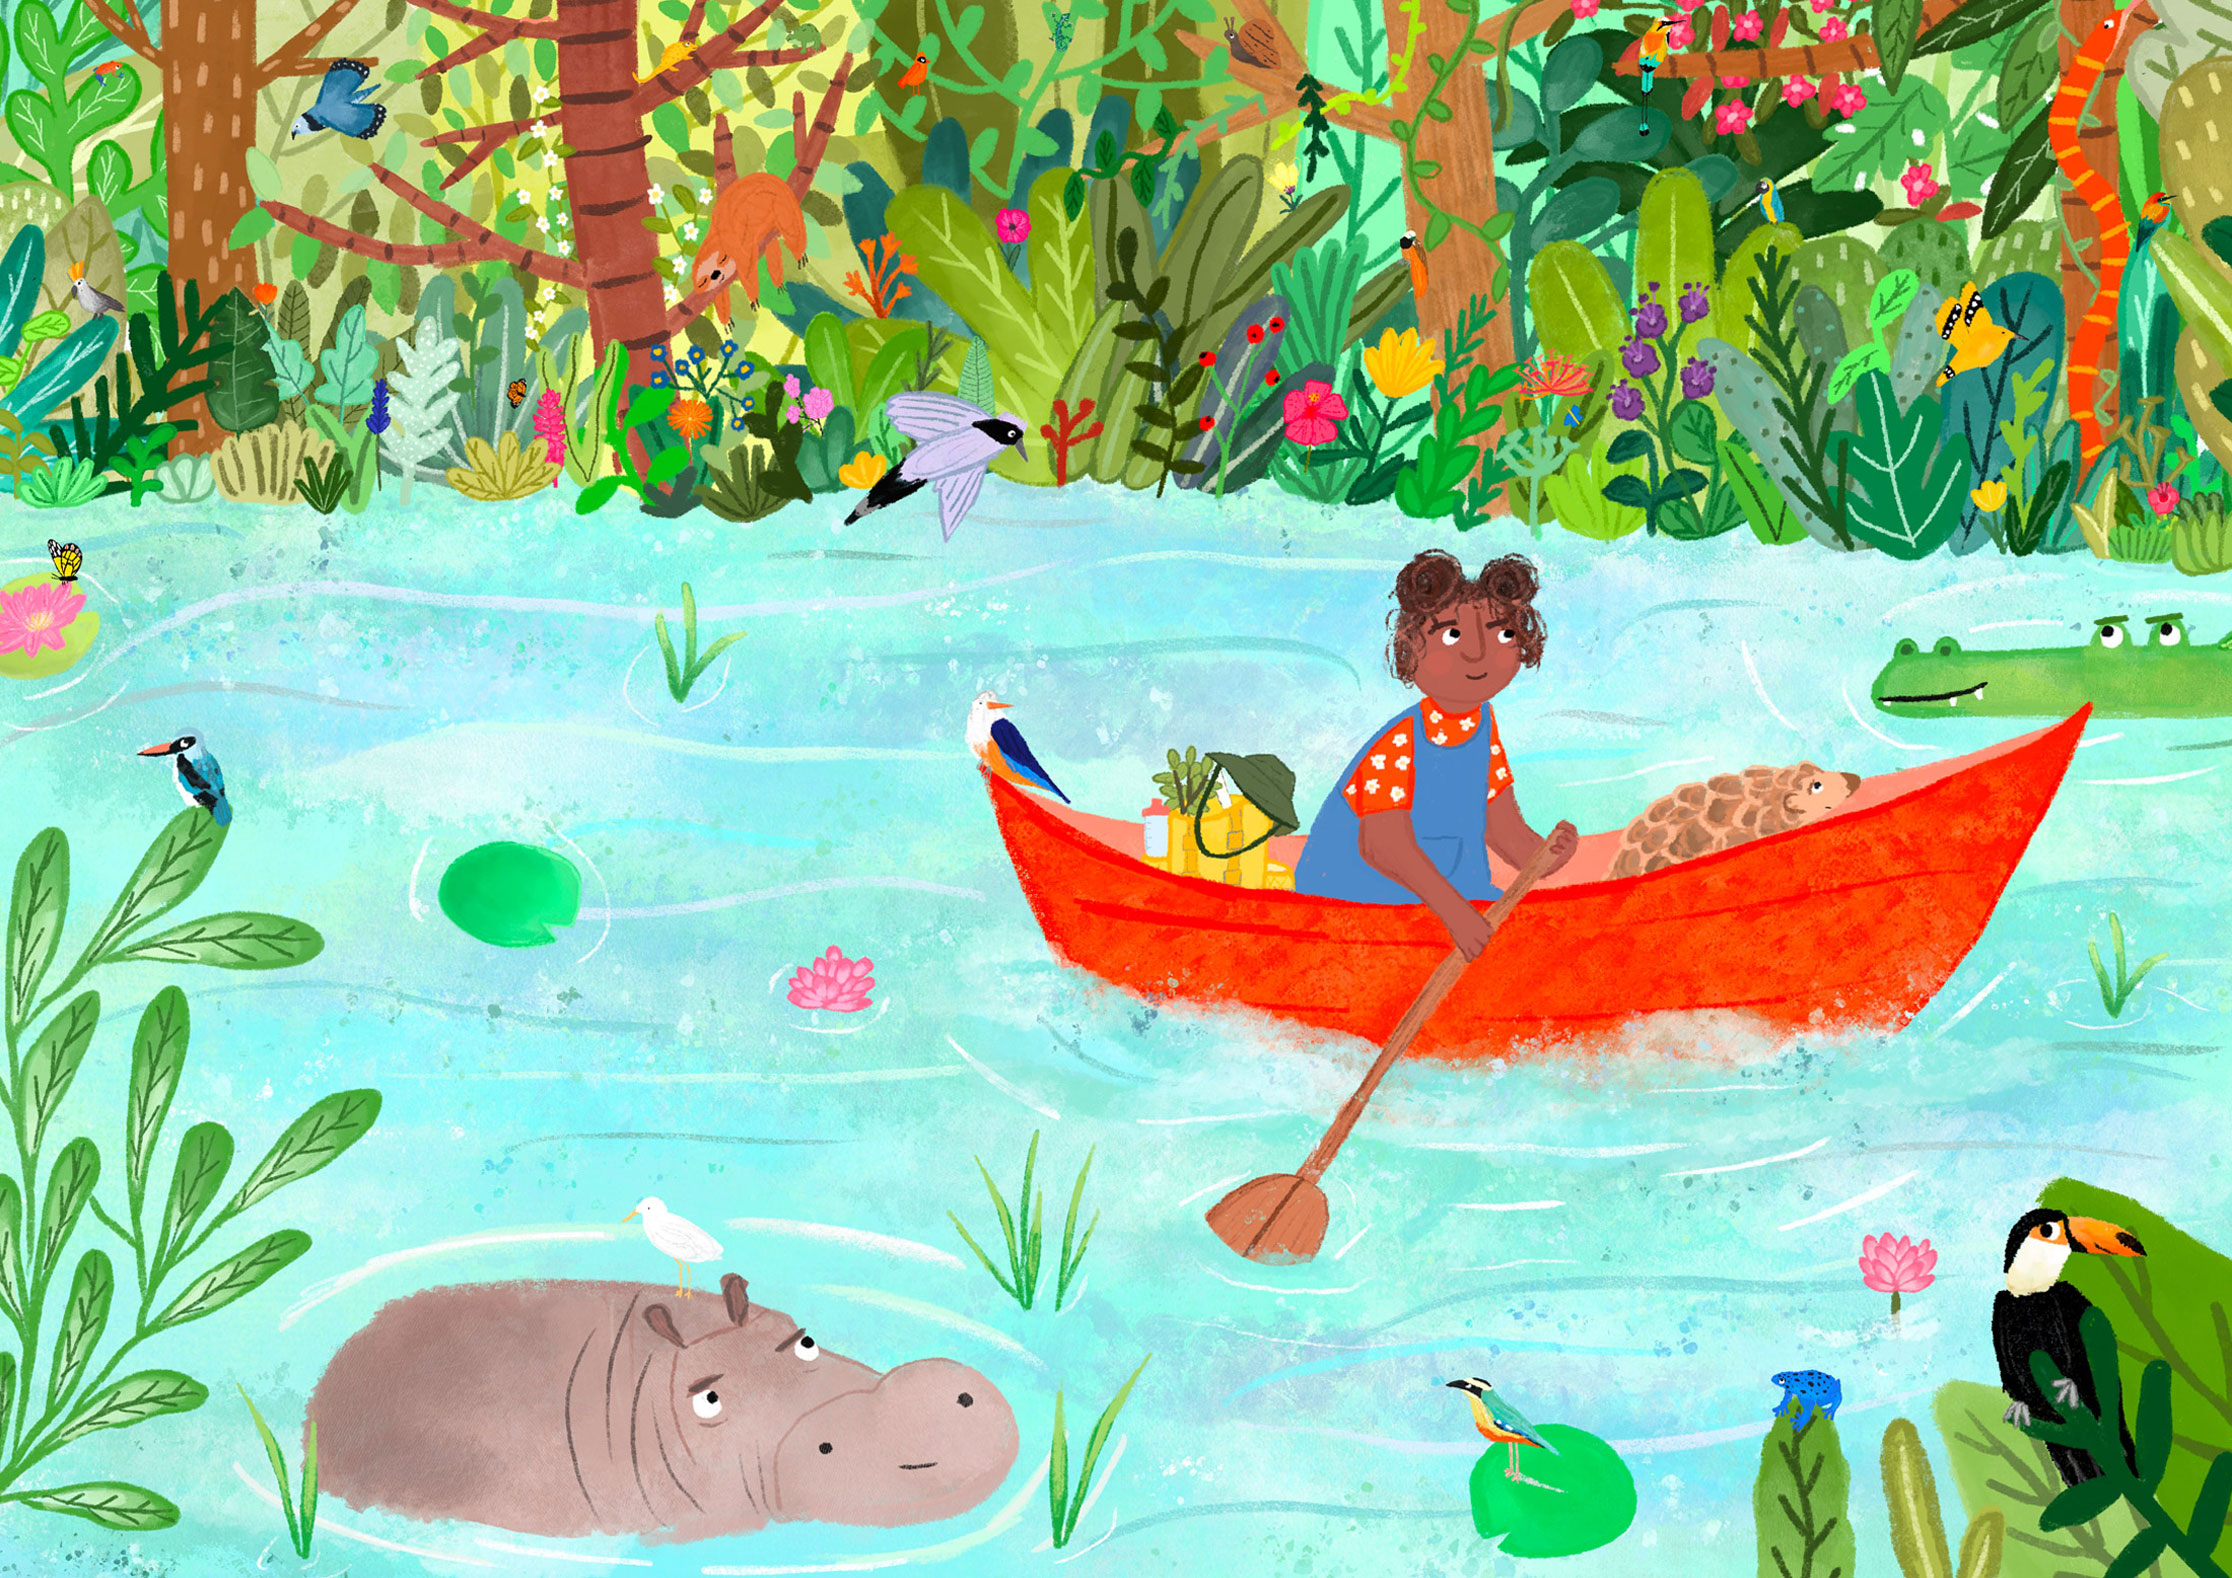 picture book illustration of a girl in a rowing boat